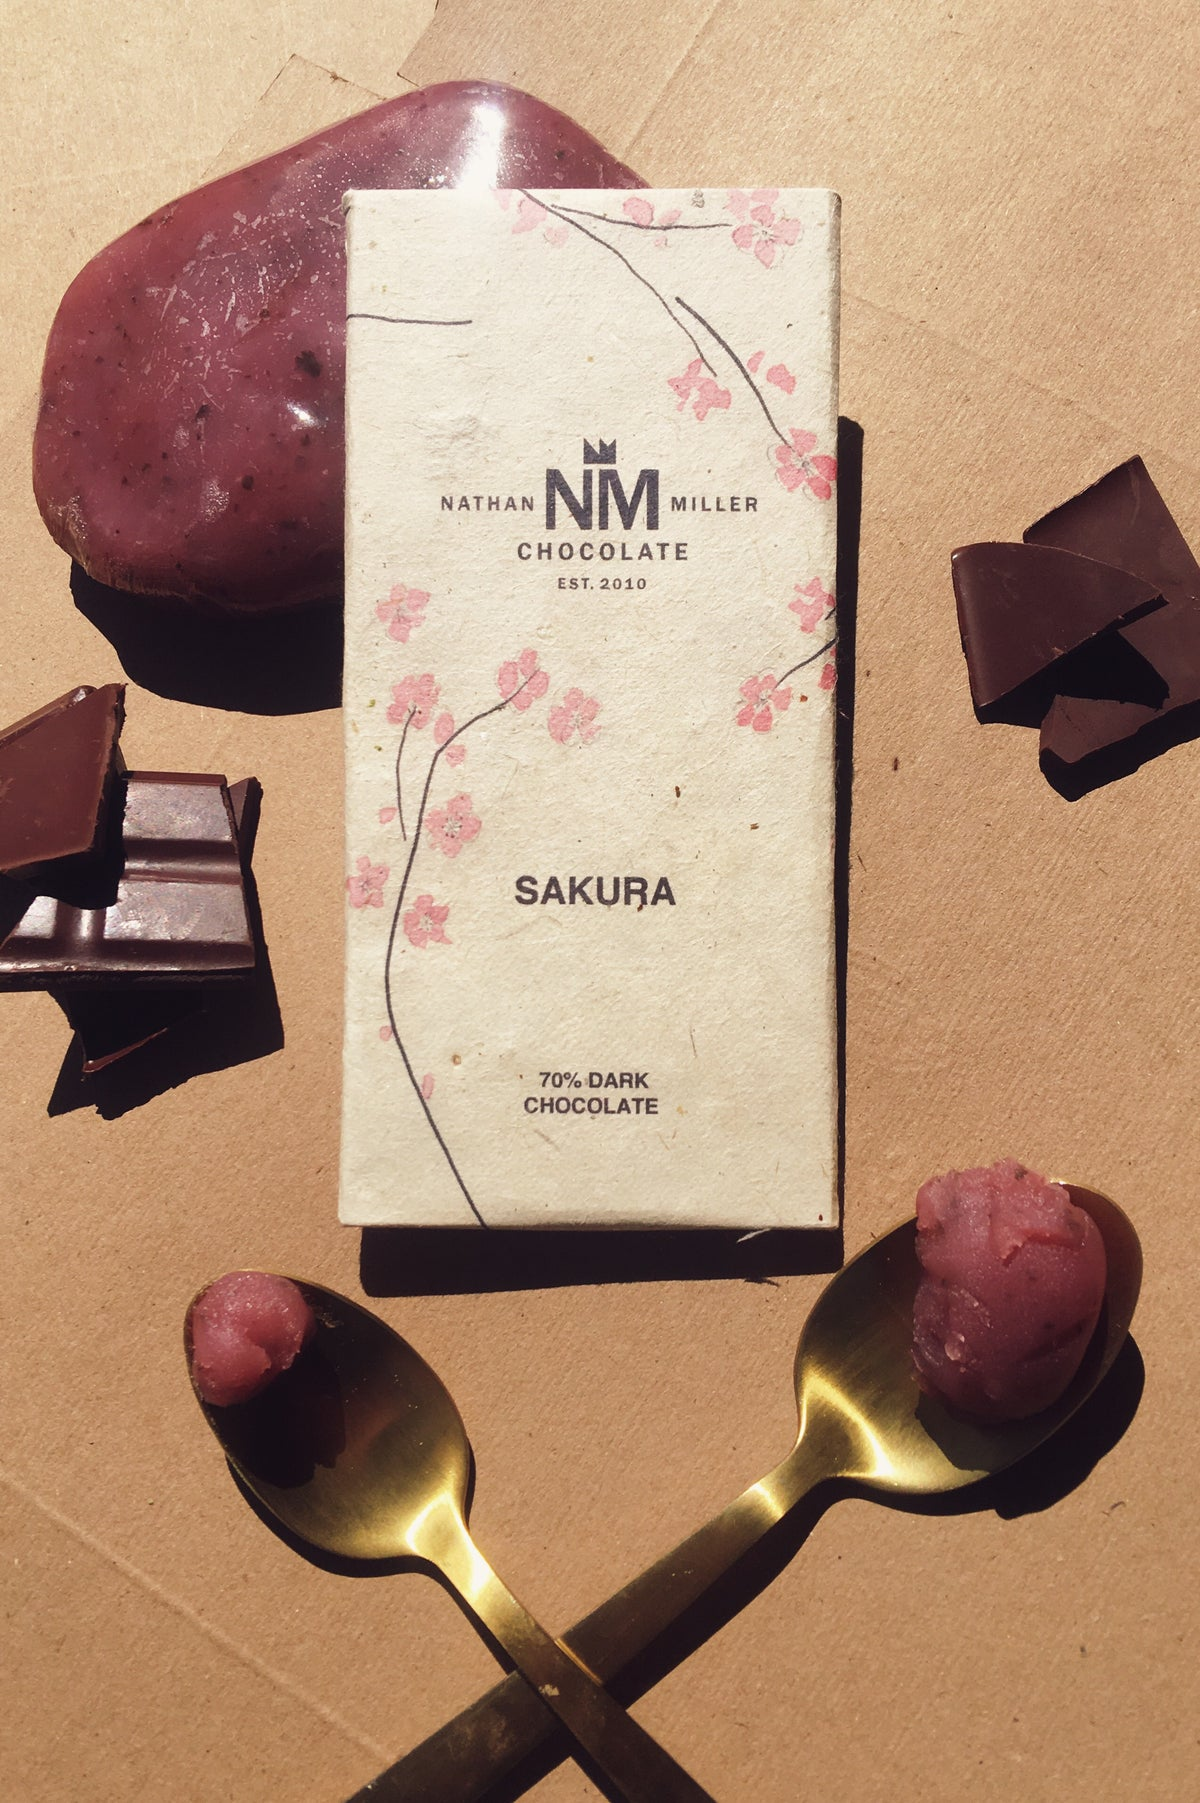 Sakura cherry japanese dark chocolate made by Nathan Miller Chocolate with Avion Clothier and Simone White Bean to Bar Crafter in Pennsylvania Kathy Tsina Bird